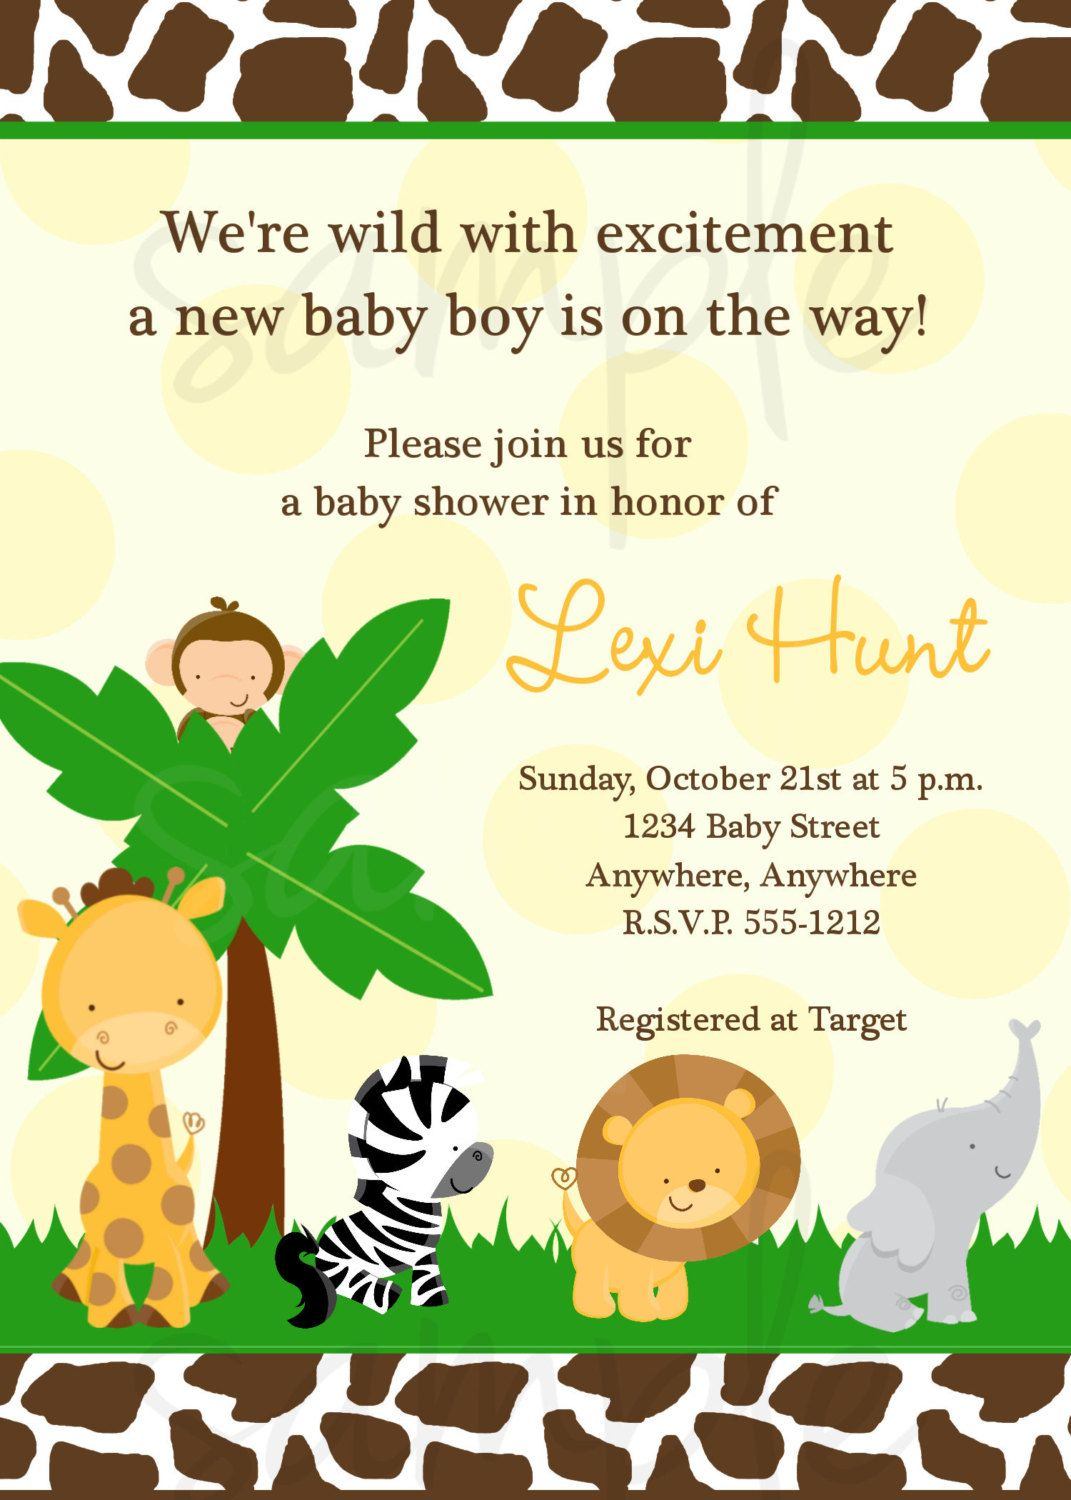 printable jungle baby shower invitation | free thank you card, Baby shower invitations